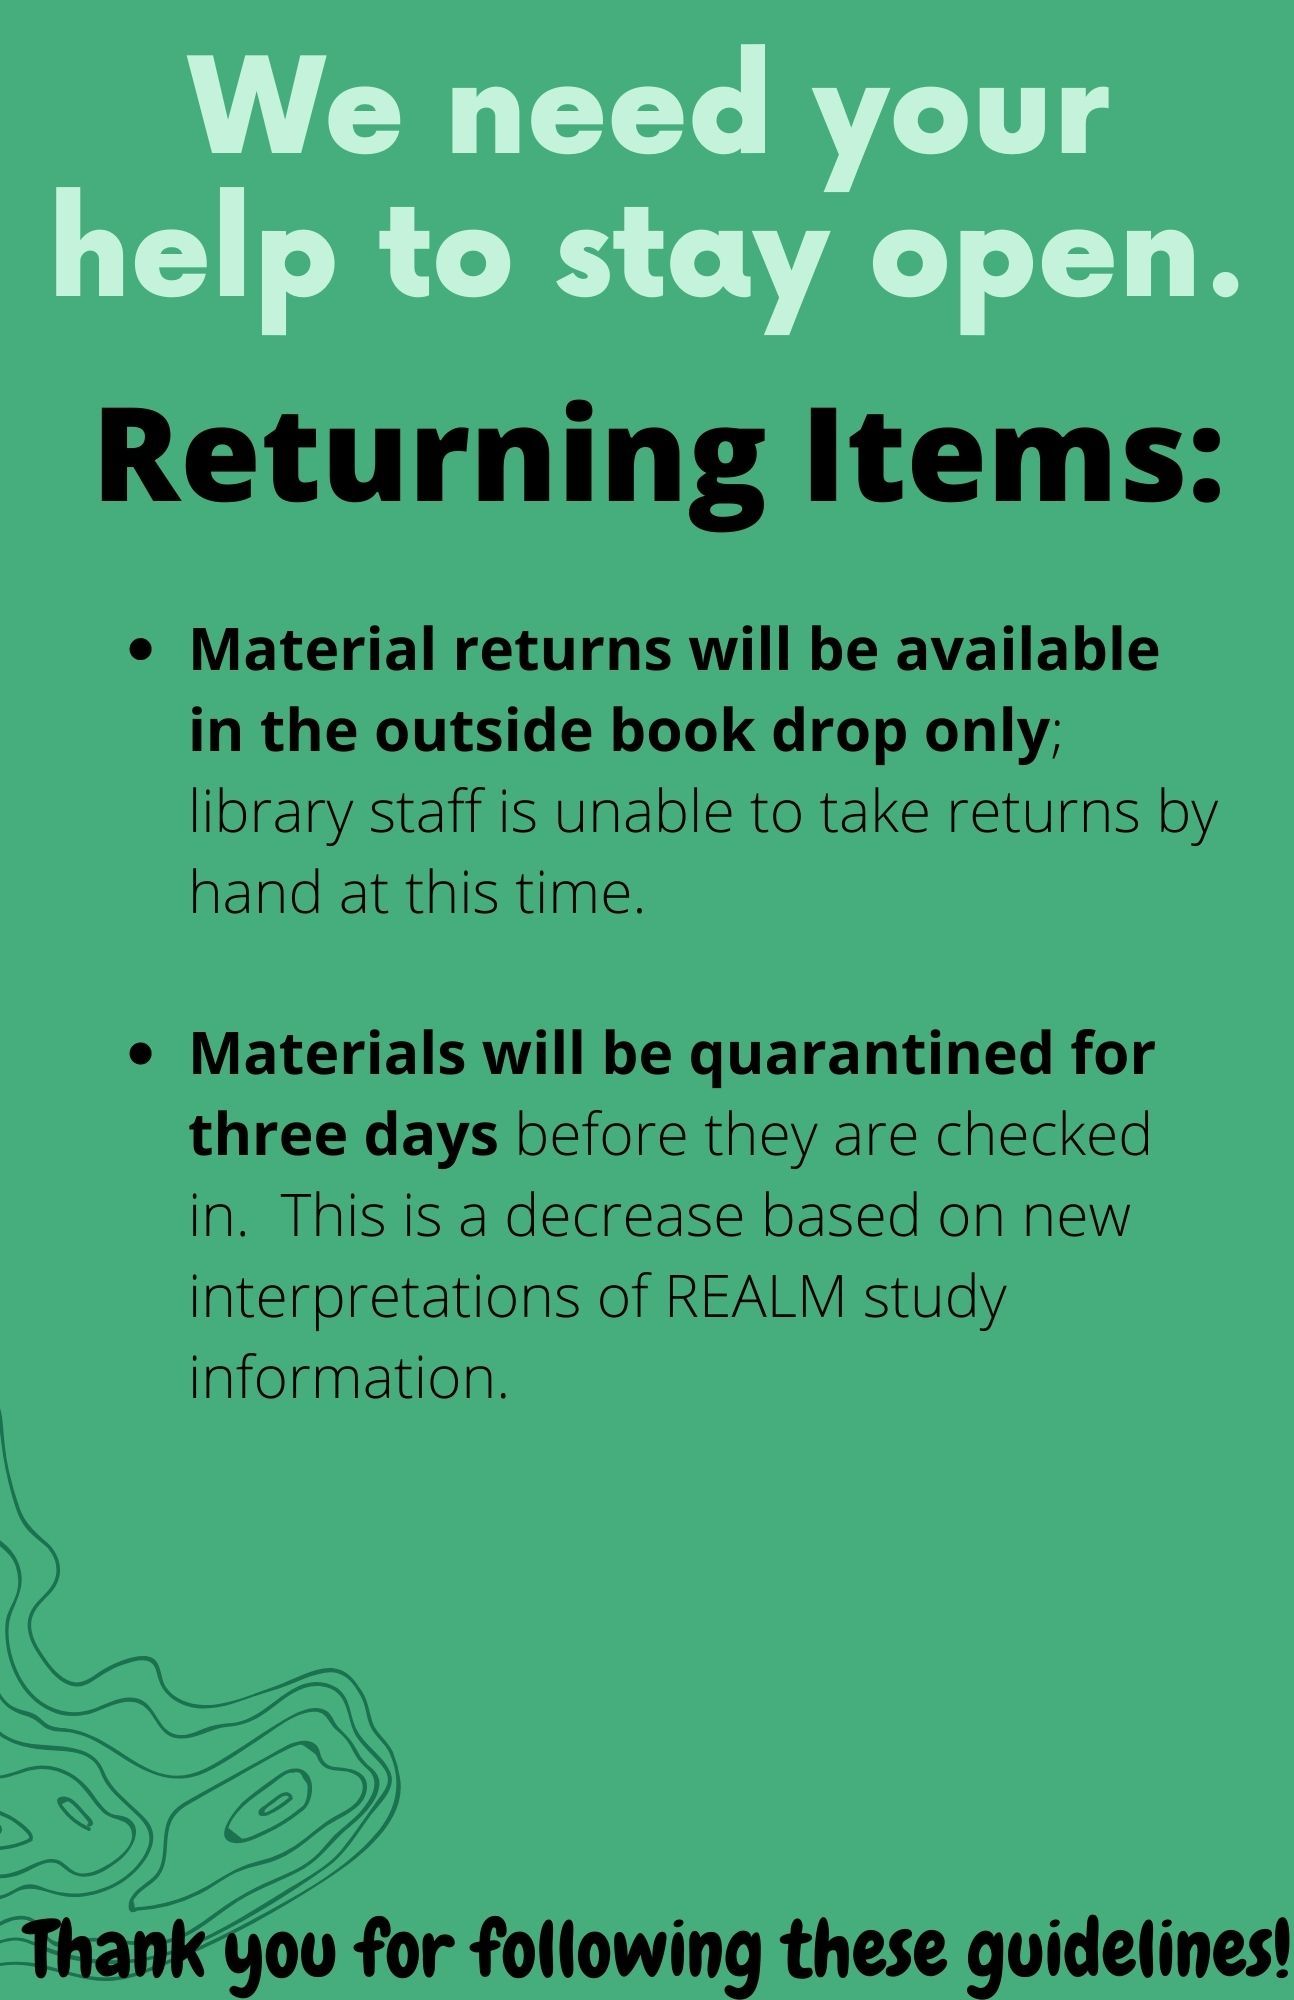 Please return all items in the book drop. We quarantine items for three days before checking them in.